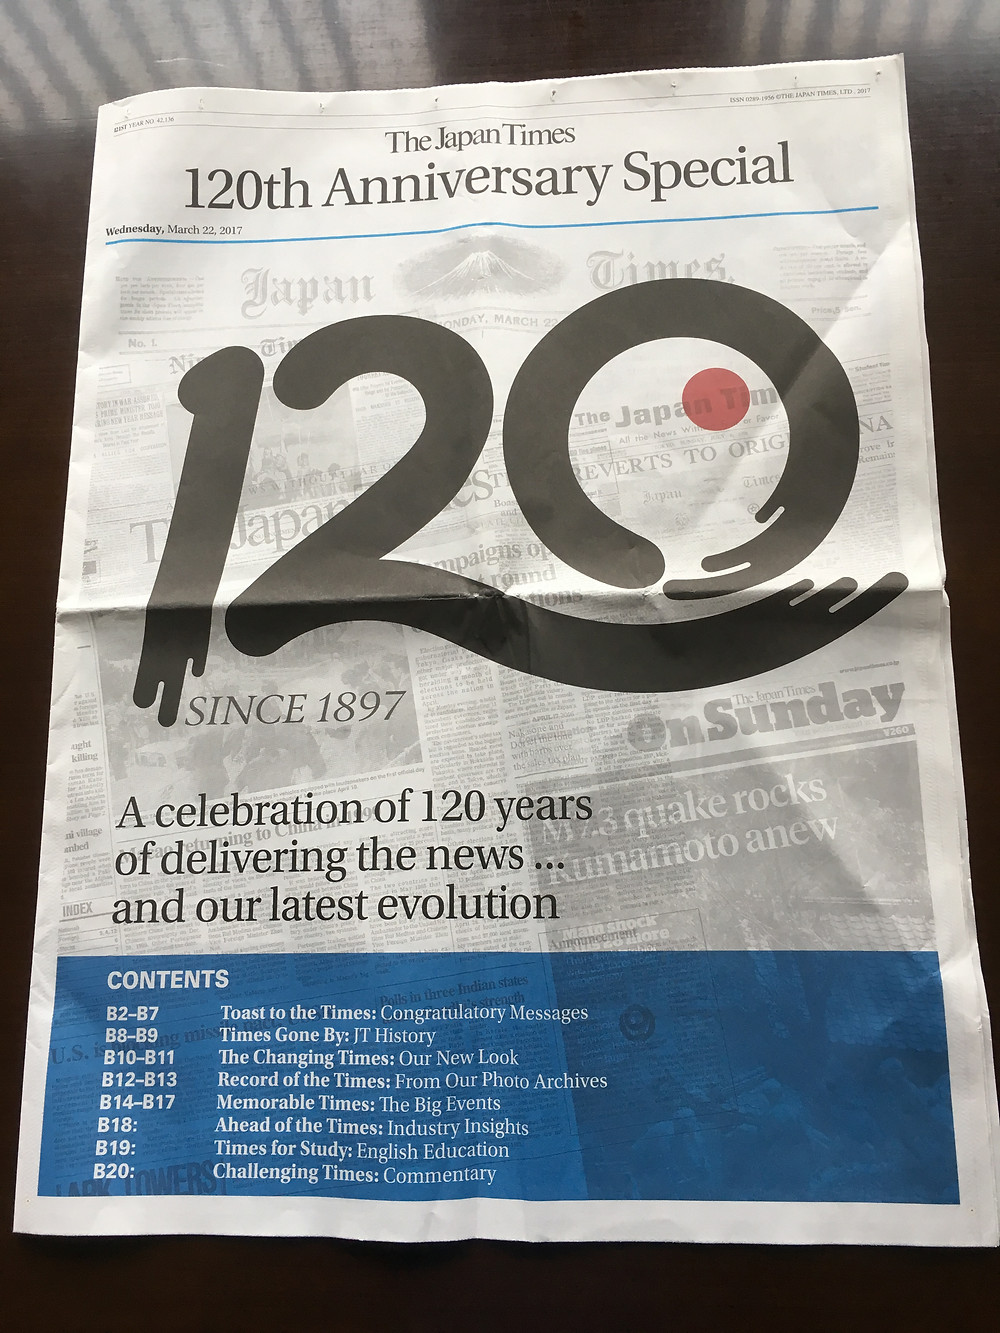 The Japan Times 120th Anniversary Special